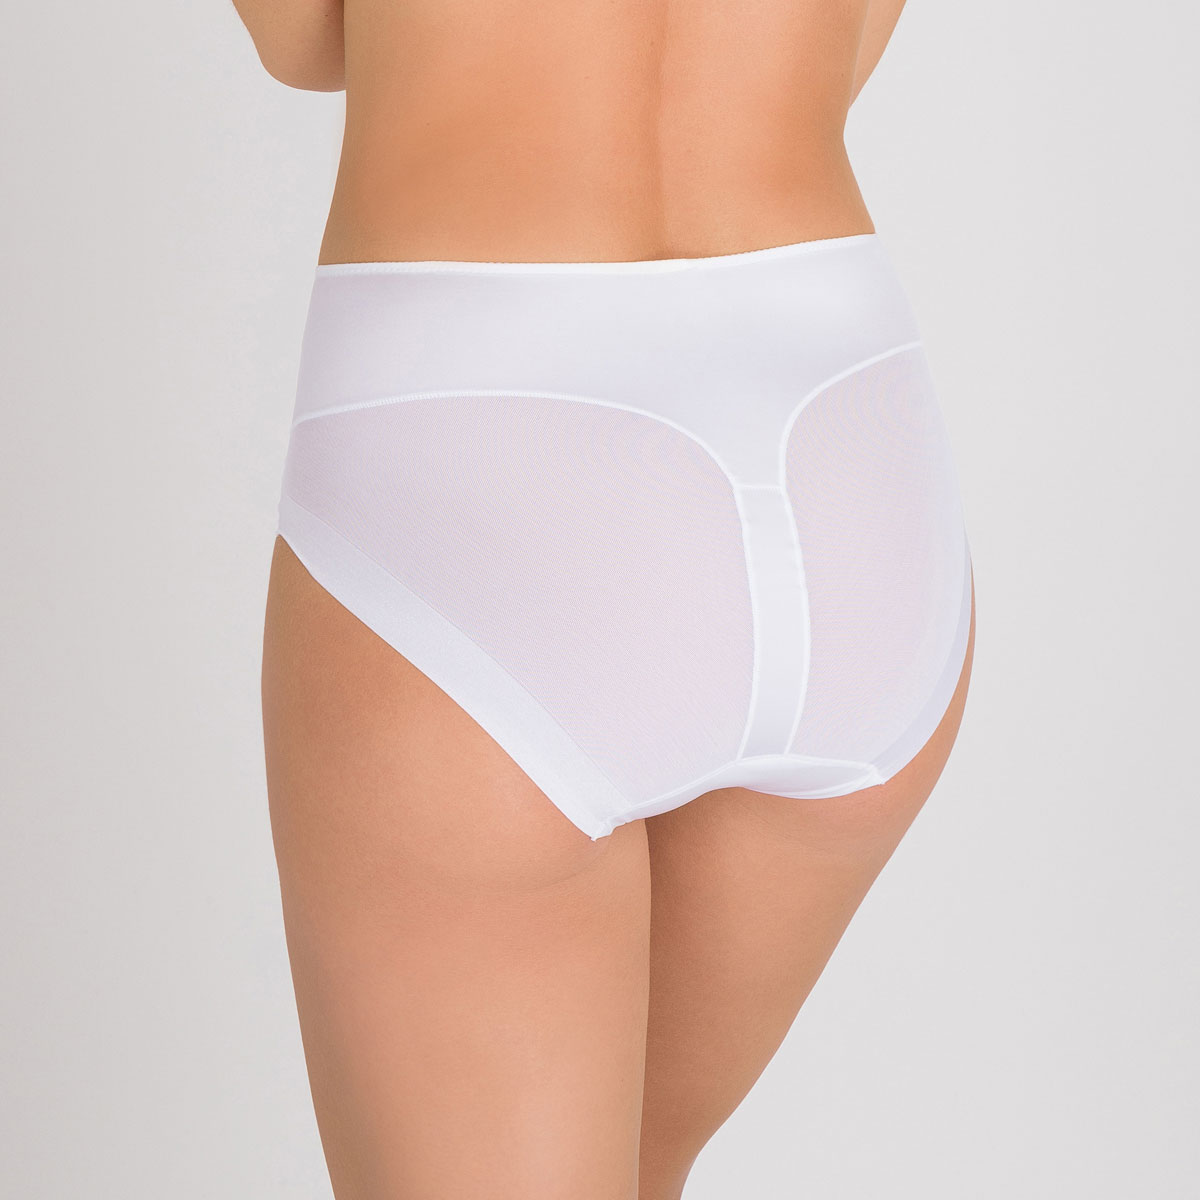 Culotte Maxi invisible blanche  - Perfect Silhouette-PLAYTEX